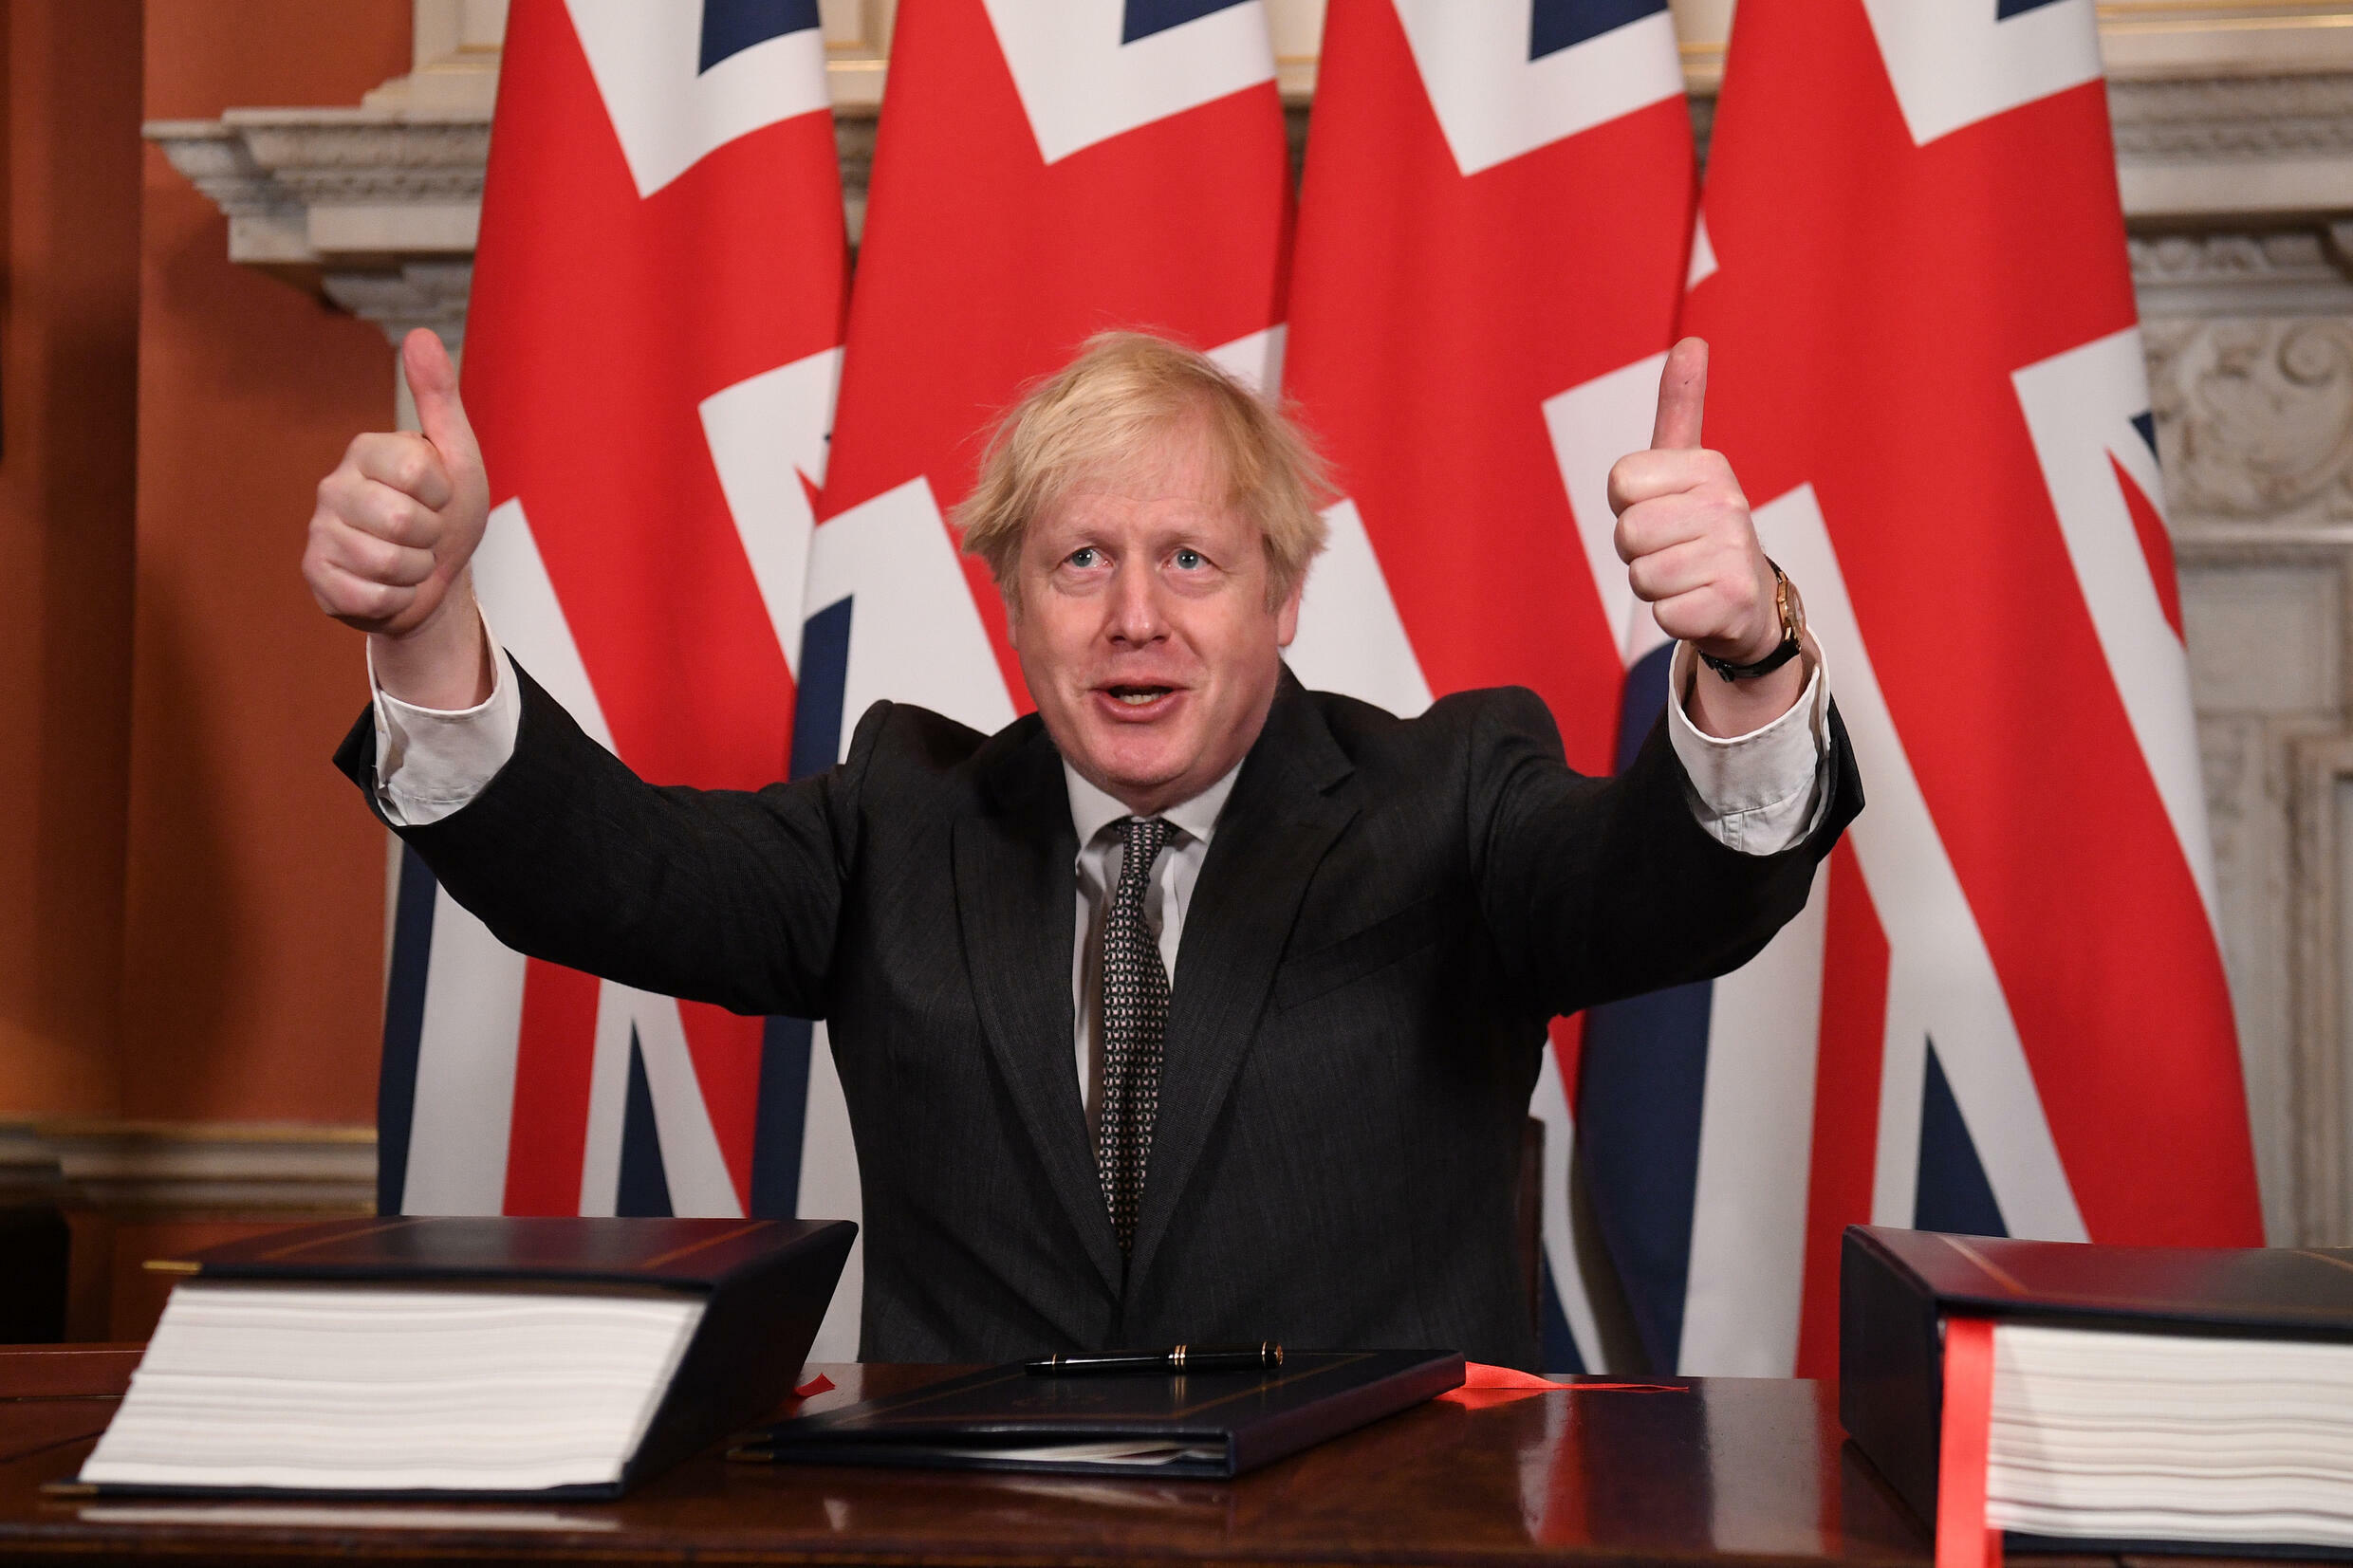 Johnson hedged his bets in the 2016 Brexit referendum before choosing to join the 'leave' side